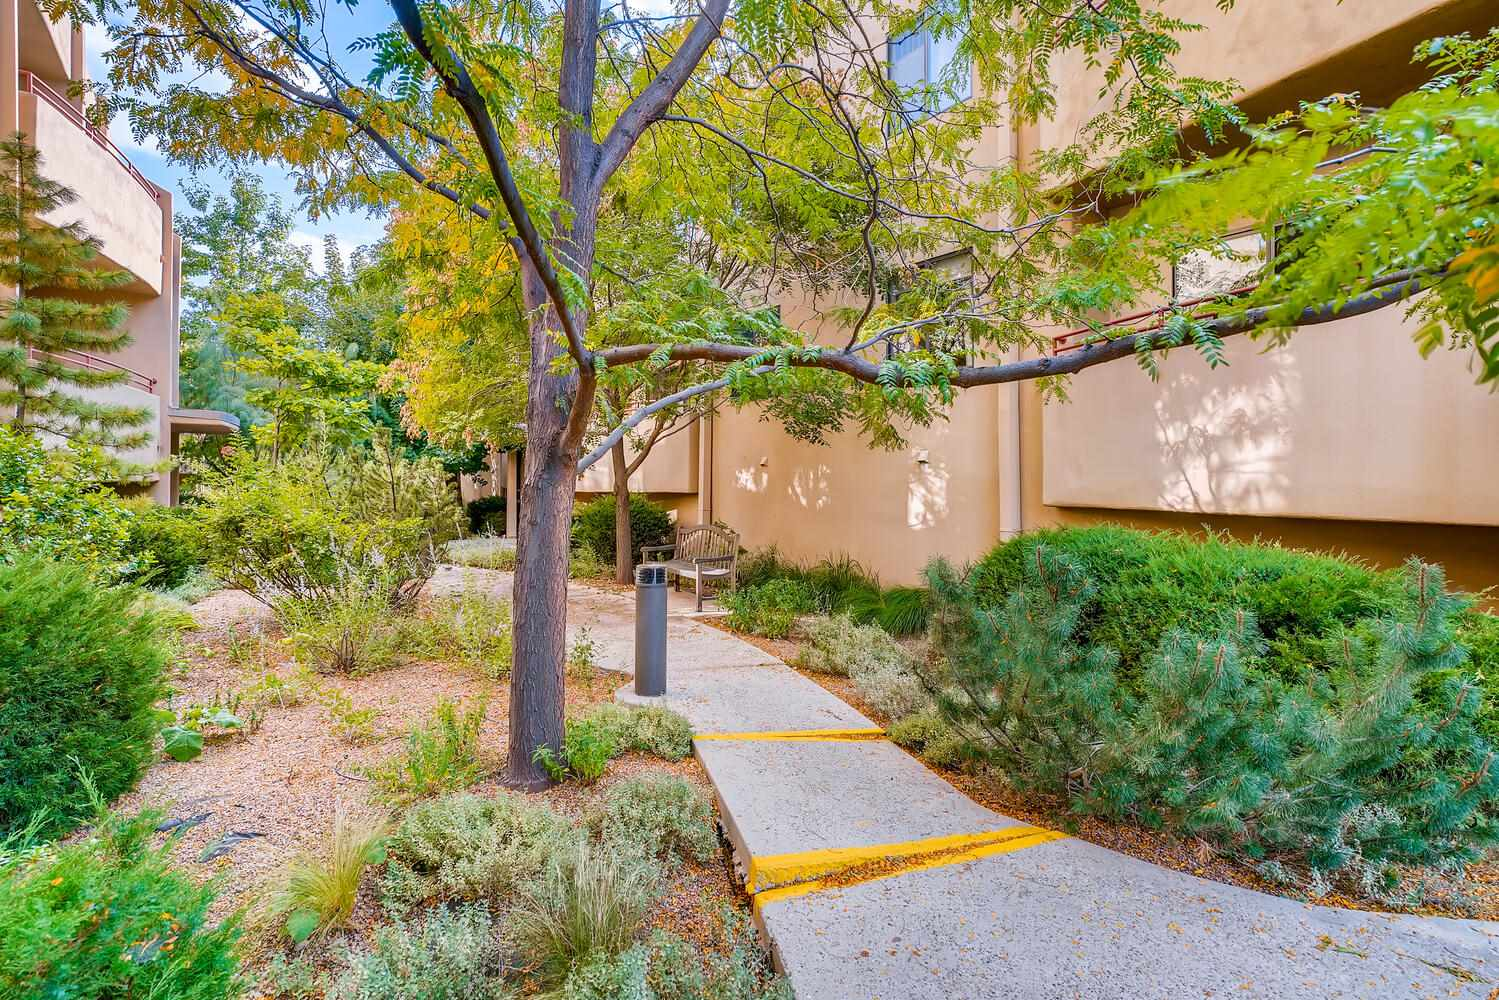 Urban oasis surrounded by mature trees!  Superb midtown location perfect for walking, bicycling or catching the train.  Close to restaurants and shopping and anything you need.  Upscale and mildly contemporary condo with 2 balconies overlooking lots of greenery.  Some views of the Jemez mountains and colorful, magnificent sunsets. Light filled, open and very comfortable floor plan with a large and exciting kitchen that includes stone counters and substantial cabinet space including a spacious pantry.  The warm, hardwood flooring adds additional beauty and dimension to the home.  Spacious living area lends itself well to a variety of layouts.  Two comfortable bedrooms and a large bathroom with room for two and centrally located utility room. Surprisingly large 6.50' x 17' personal storage unit for seasonal items and sports equipment.  Covered parking for your car close to the home. Beautifully inviting landscaped entry and walkways.  Very private and quiet location.